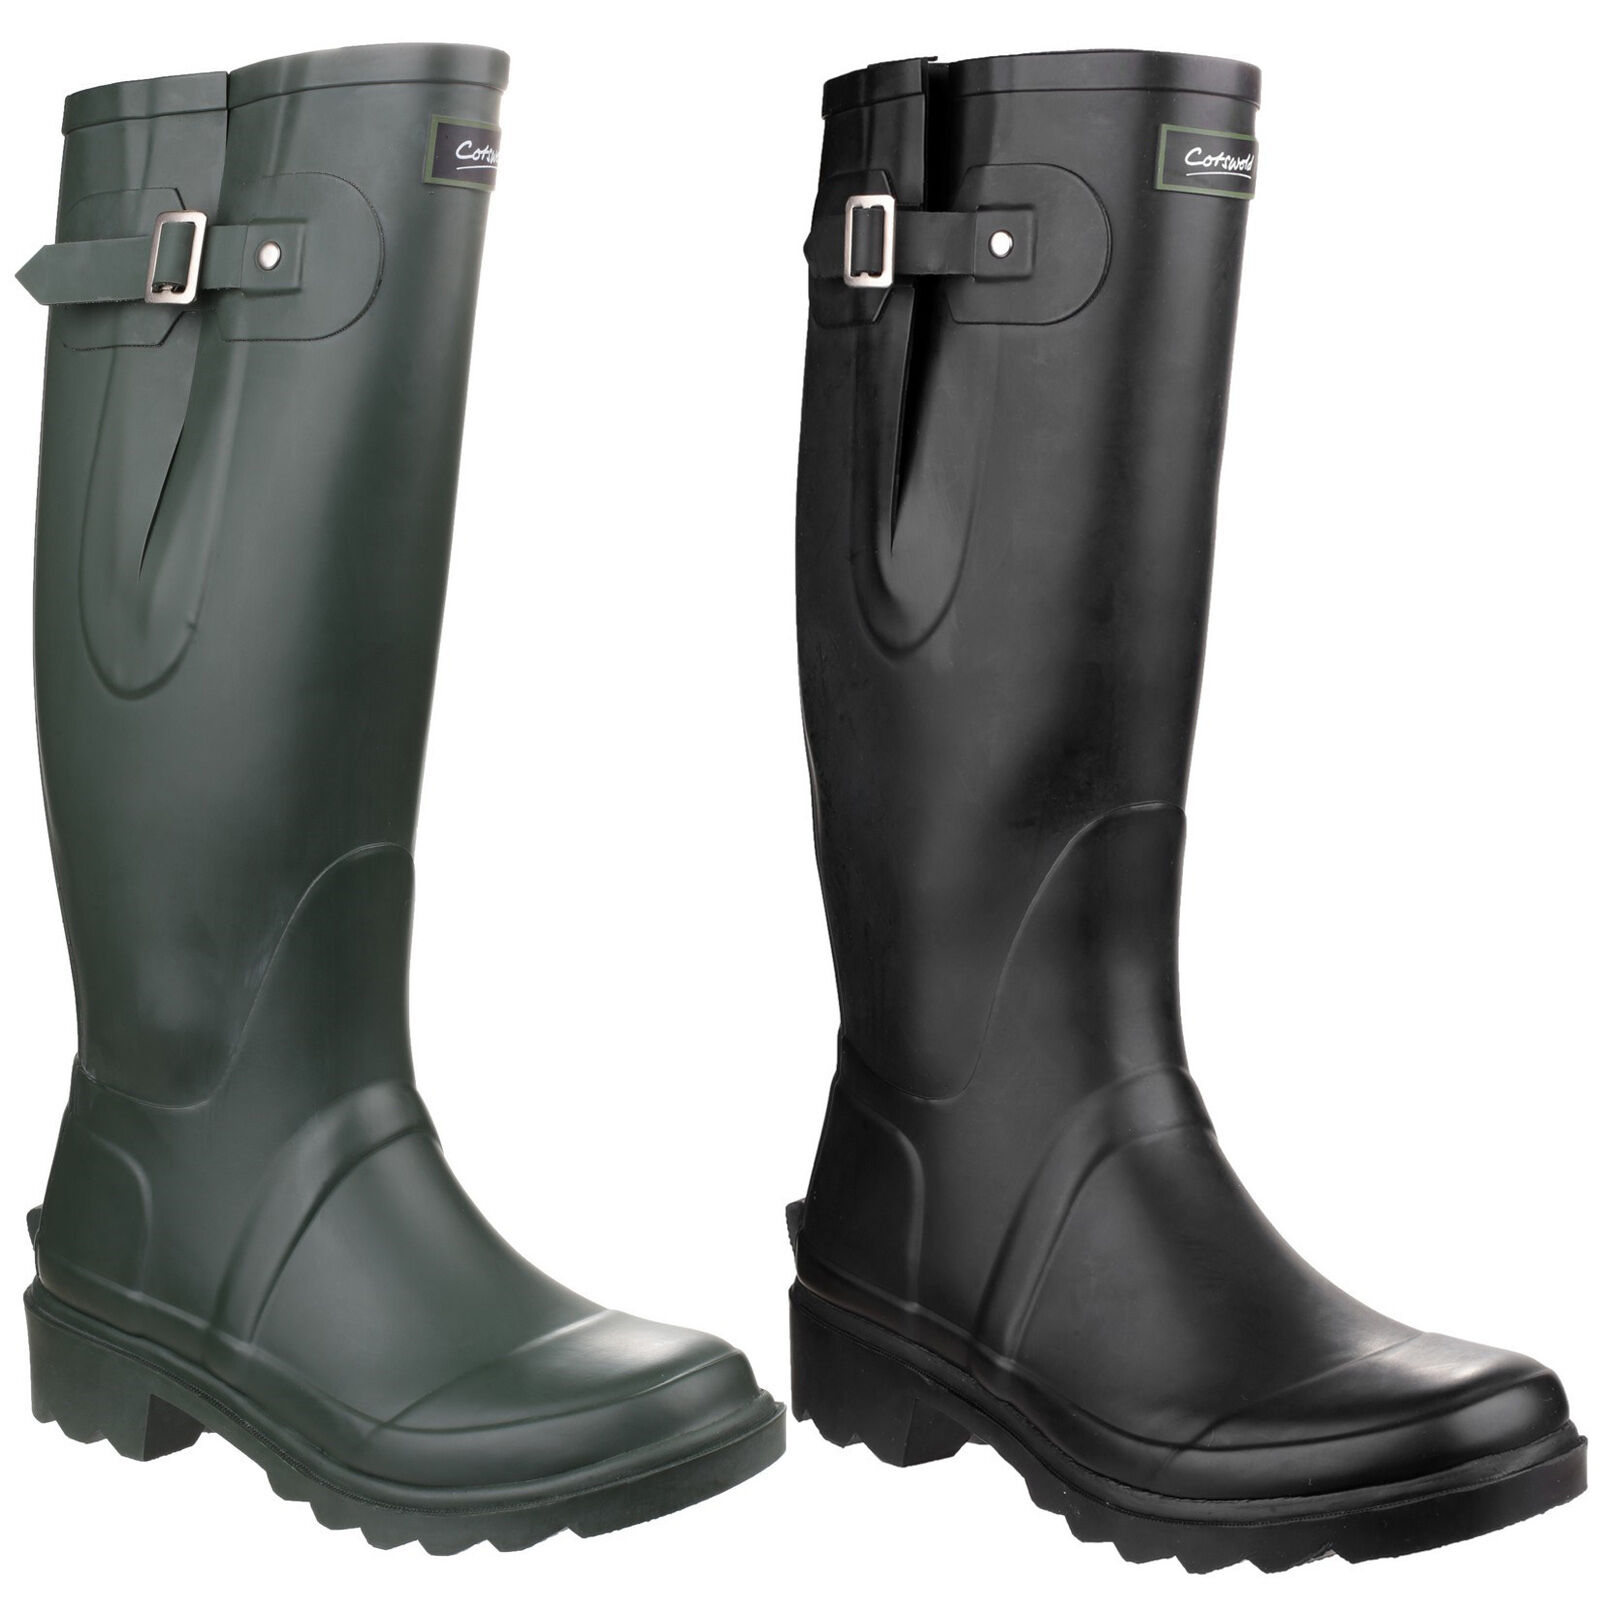 Cotswold Ragley Rubber Stiefel Mens Boys Waterproof Wellingtons Wellies UK3-12